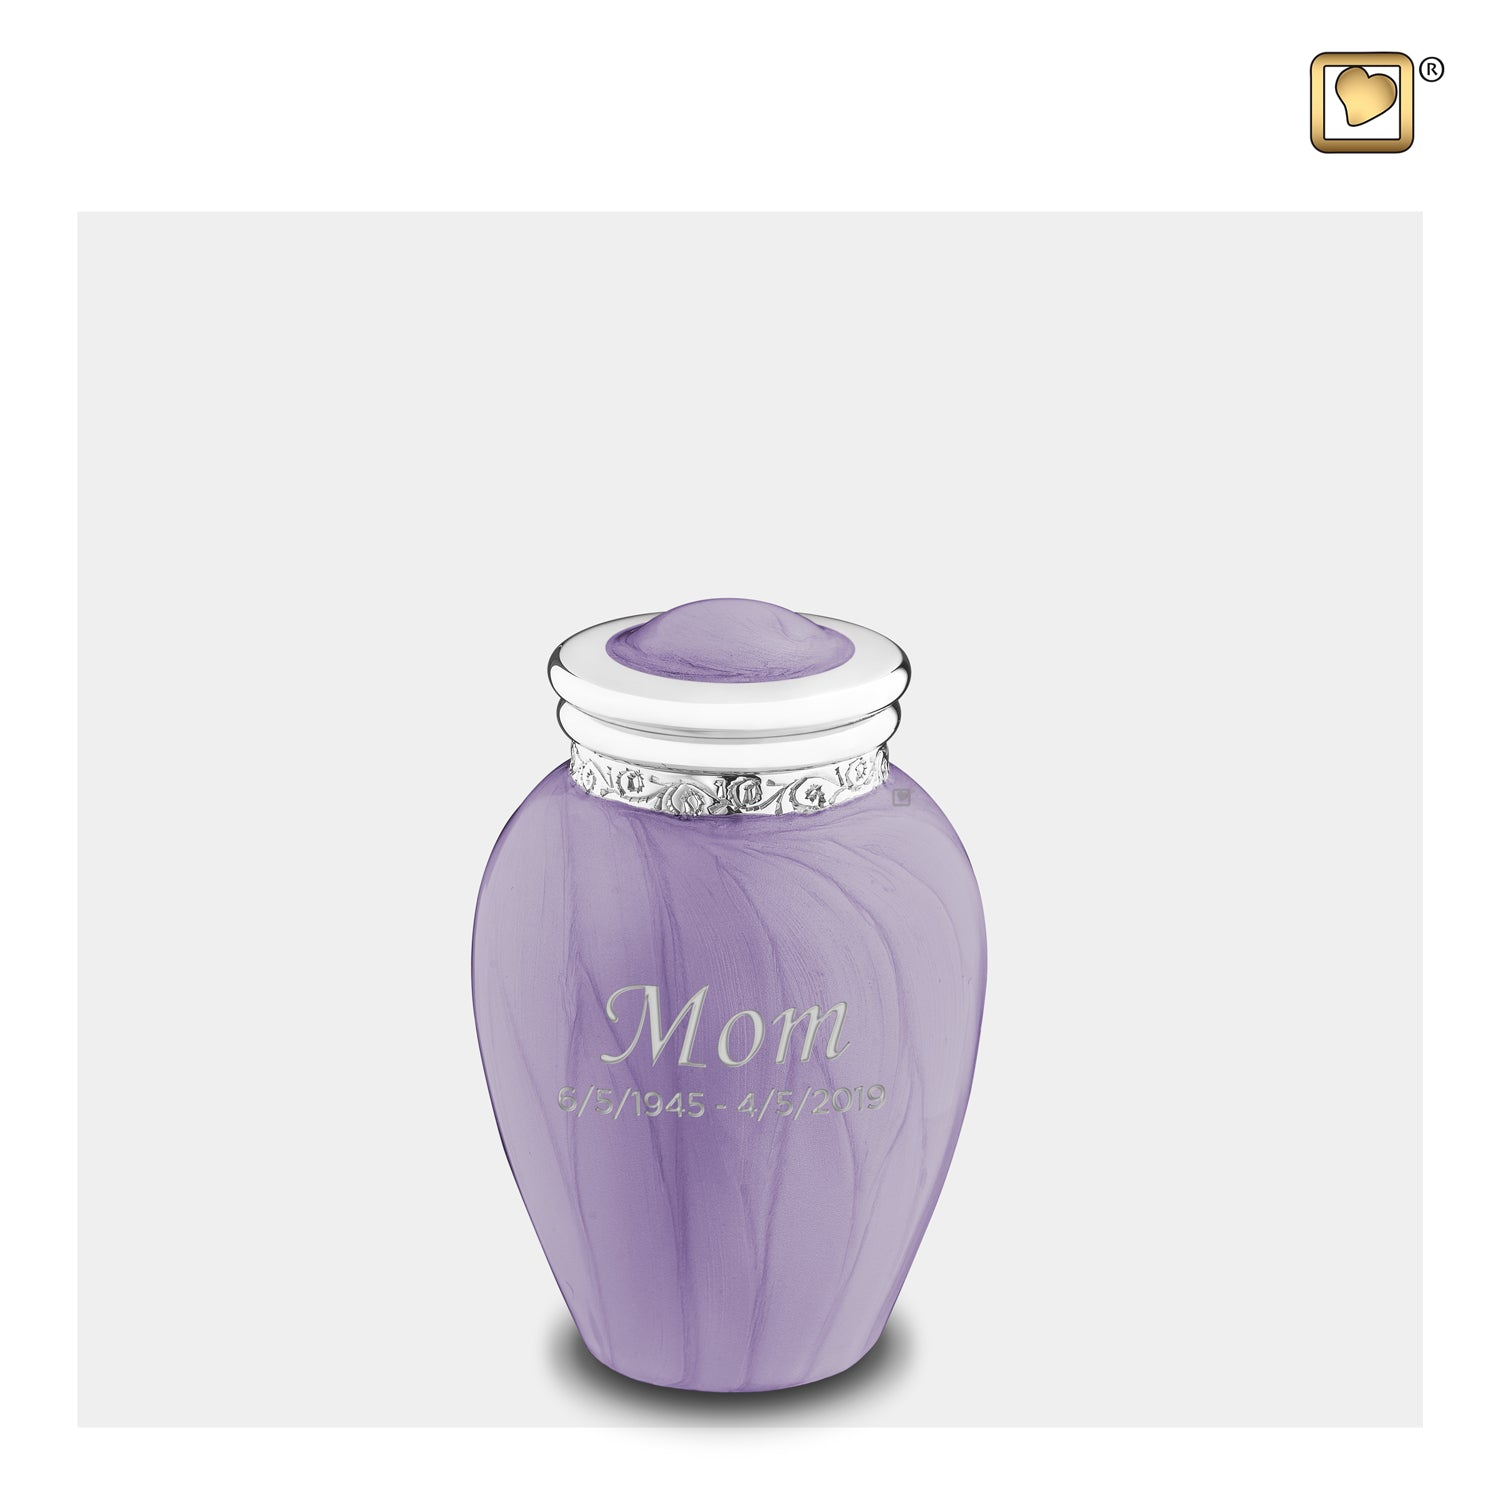 Keepsake Blessing Pearl Lavender Cremation Urn